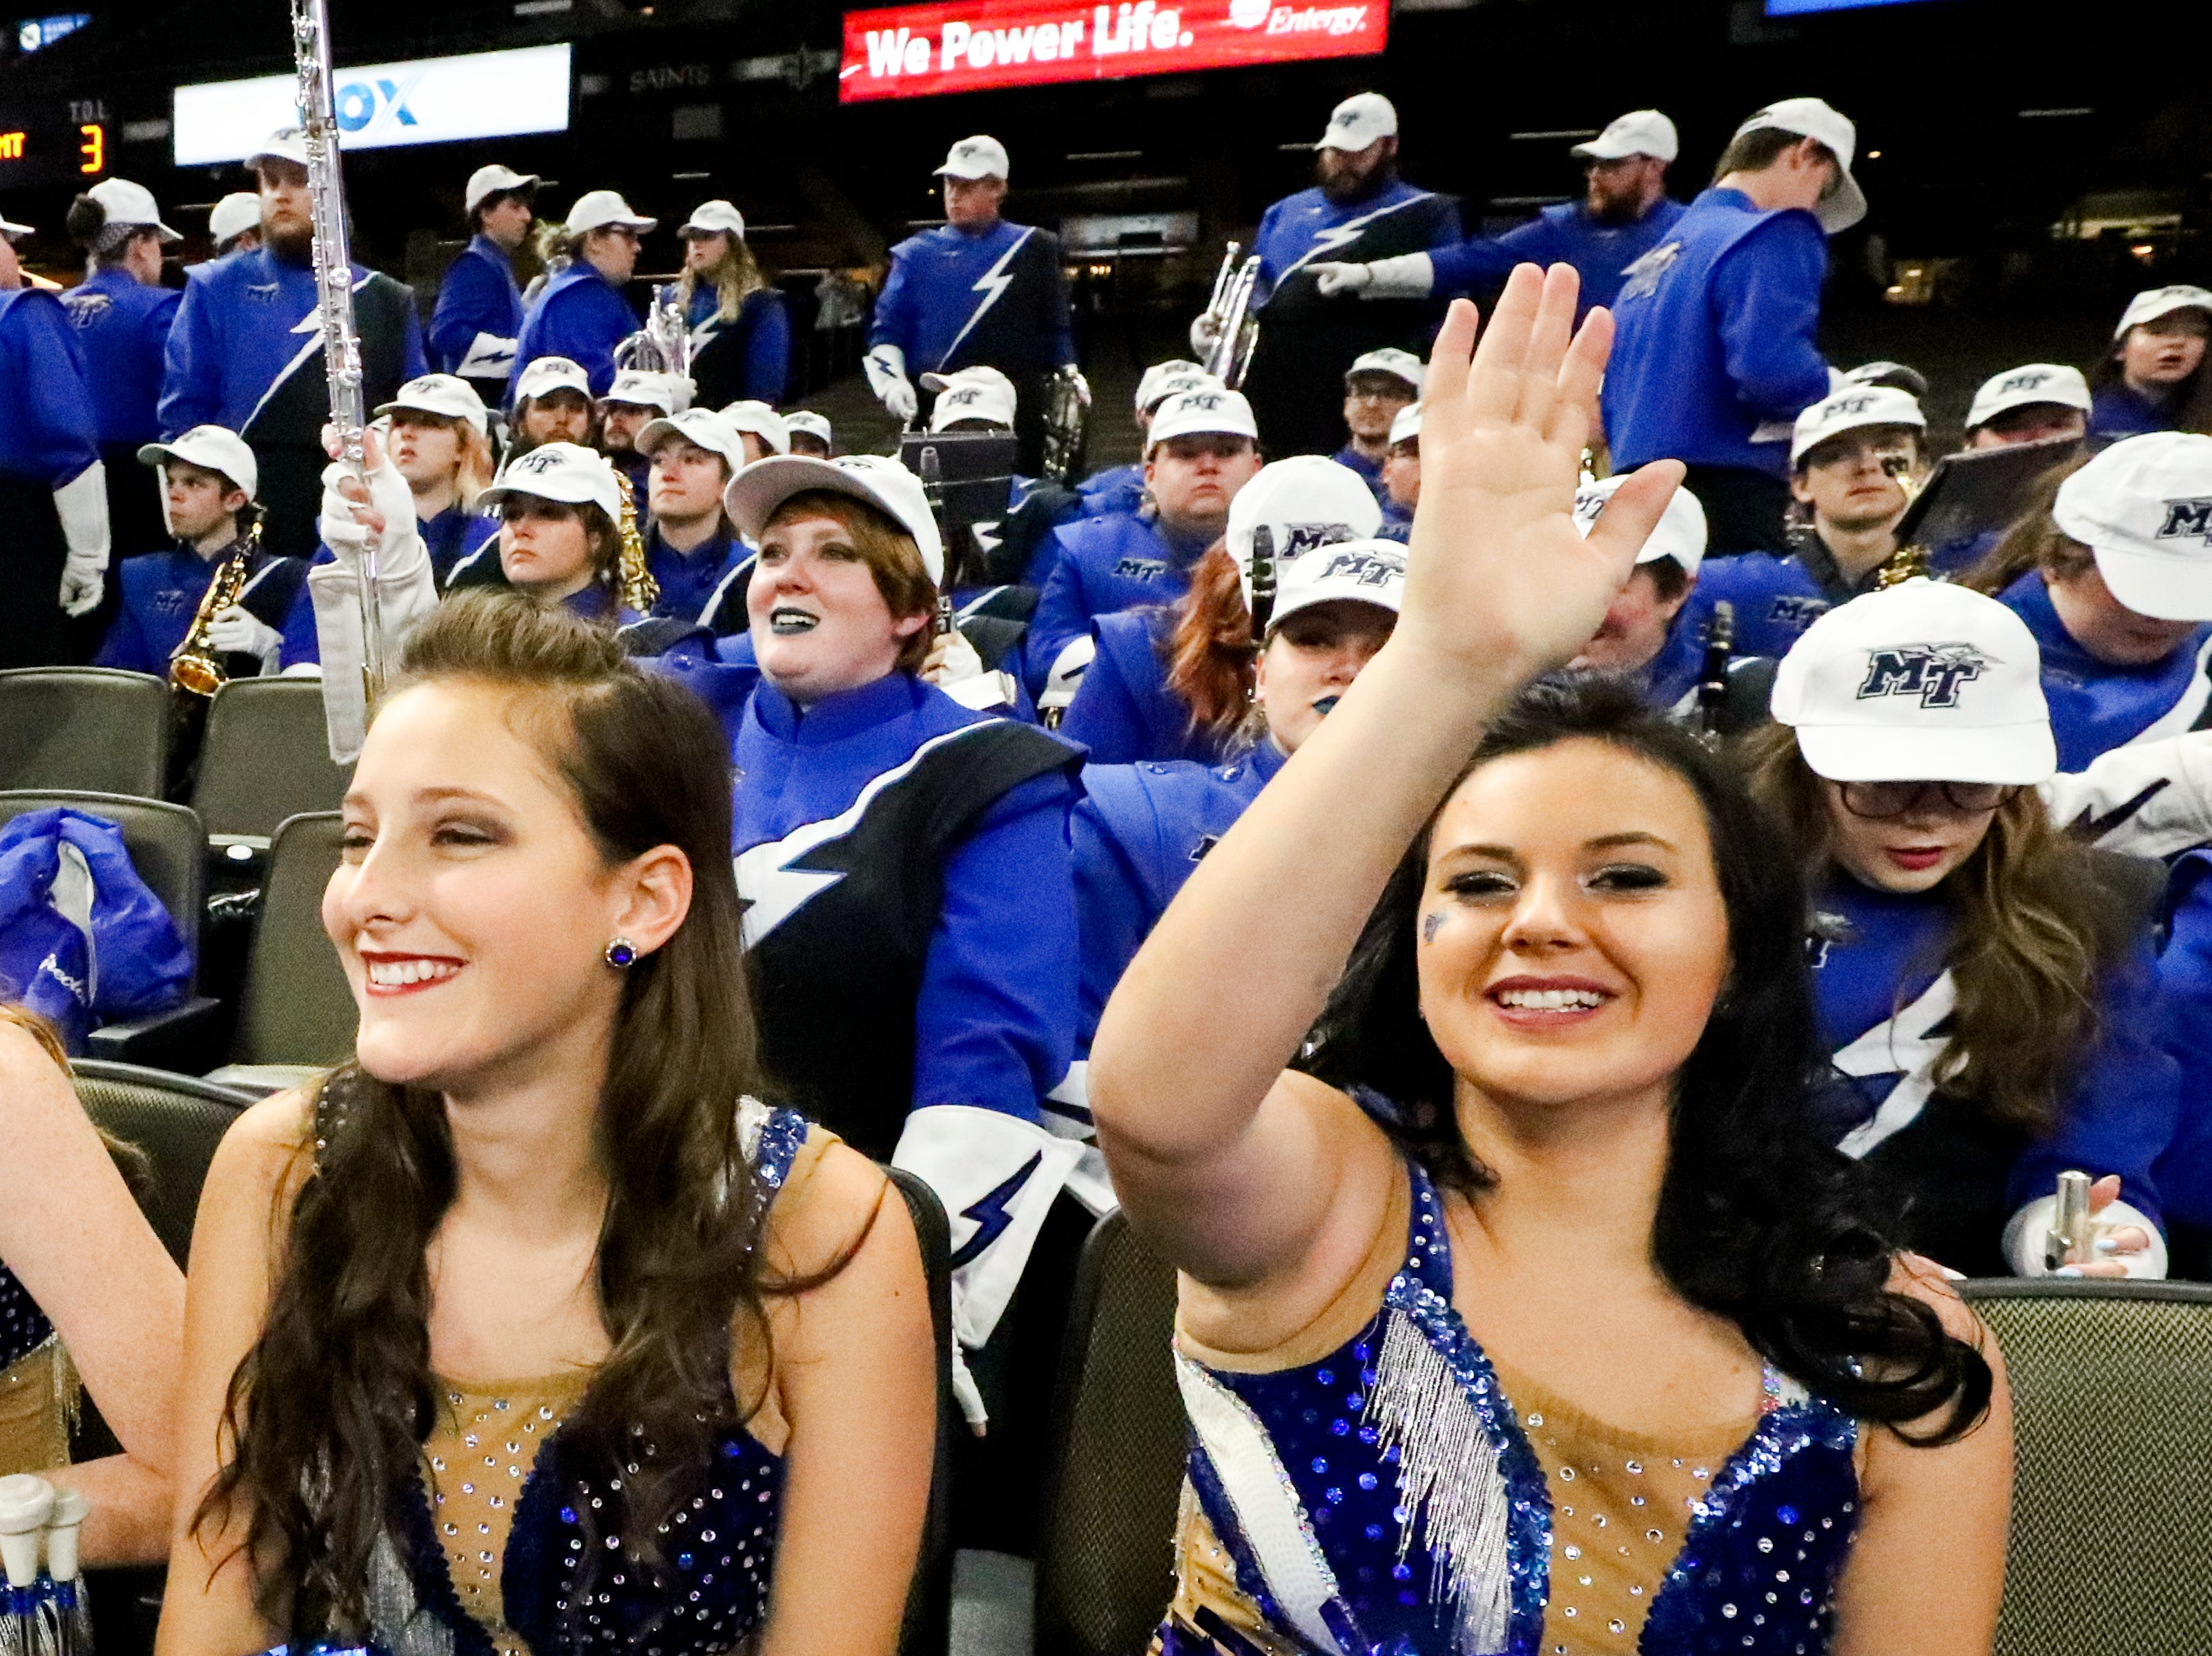 Majorettes sit with the band before the game at the Mercedes-Benz Superdome Saturday, Dec. 15, 2018, in New Orleans, La.